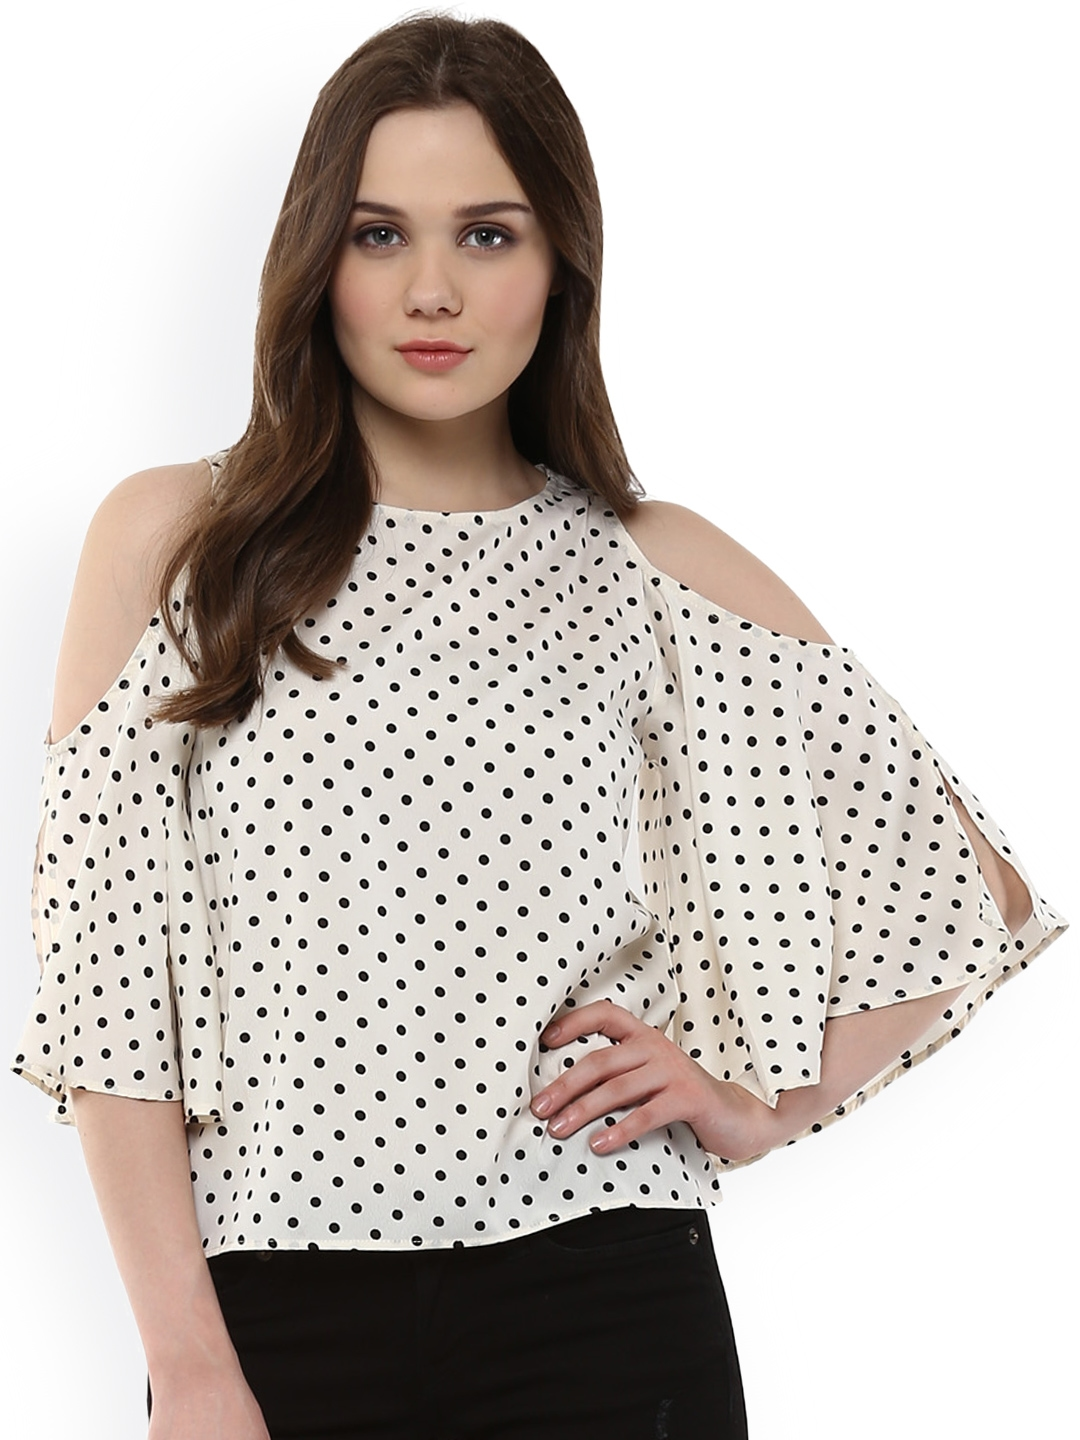 Cold Shoulder Tops - Buy Cold Shoulder Tops Online - Myntra